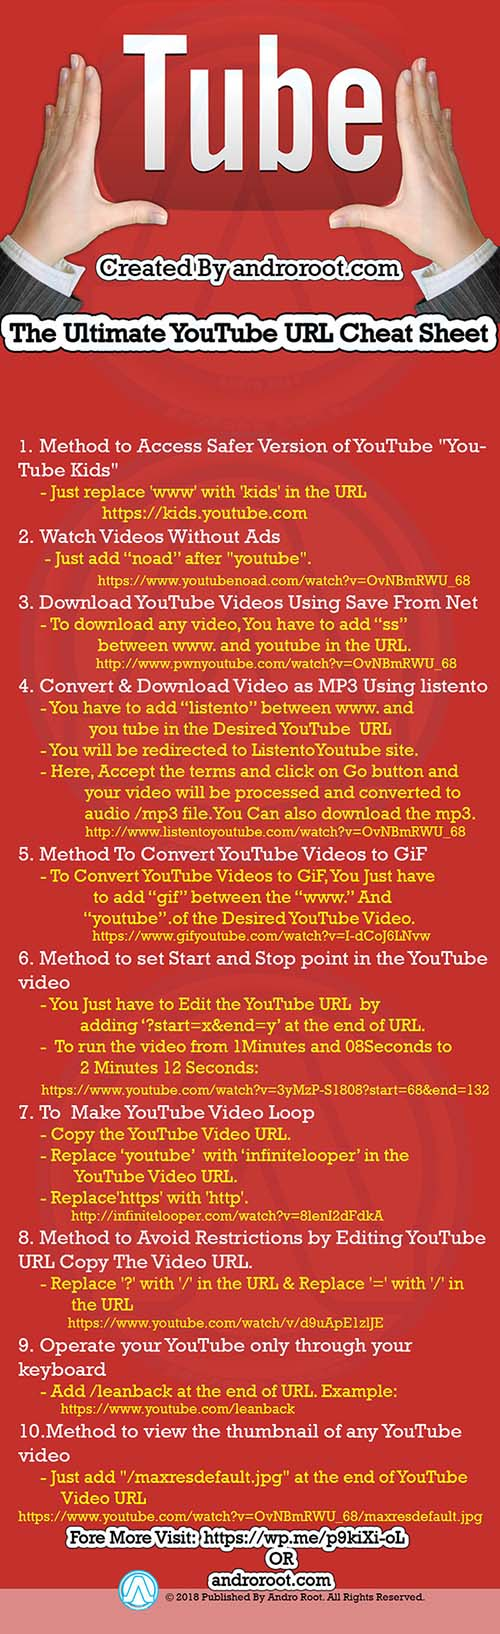 All The Ultimate YouTube URL Cheat Sheet or  YouTube Tricks in a Single Image